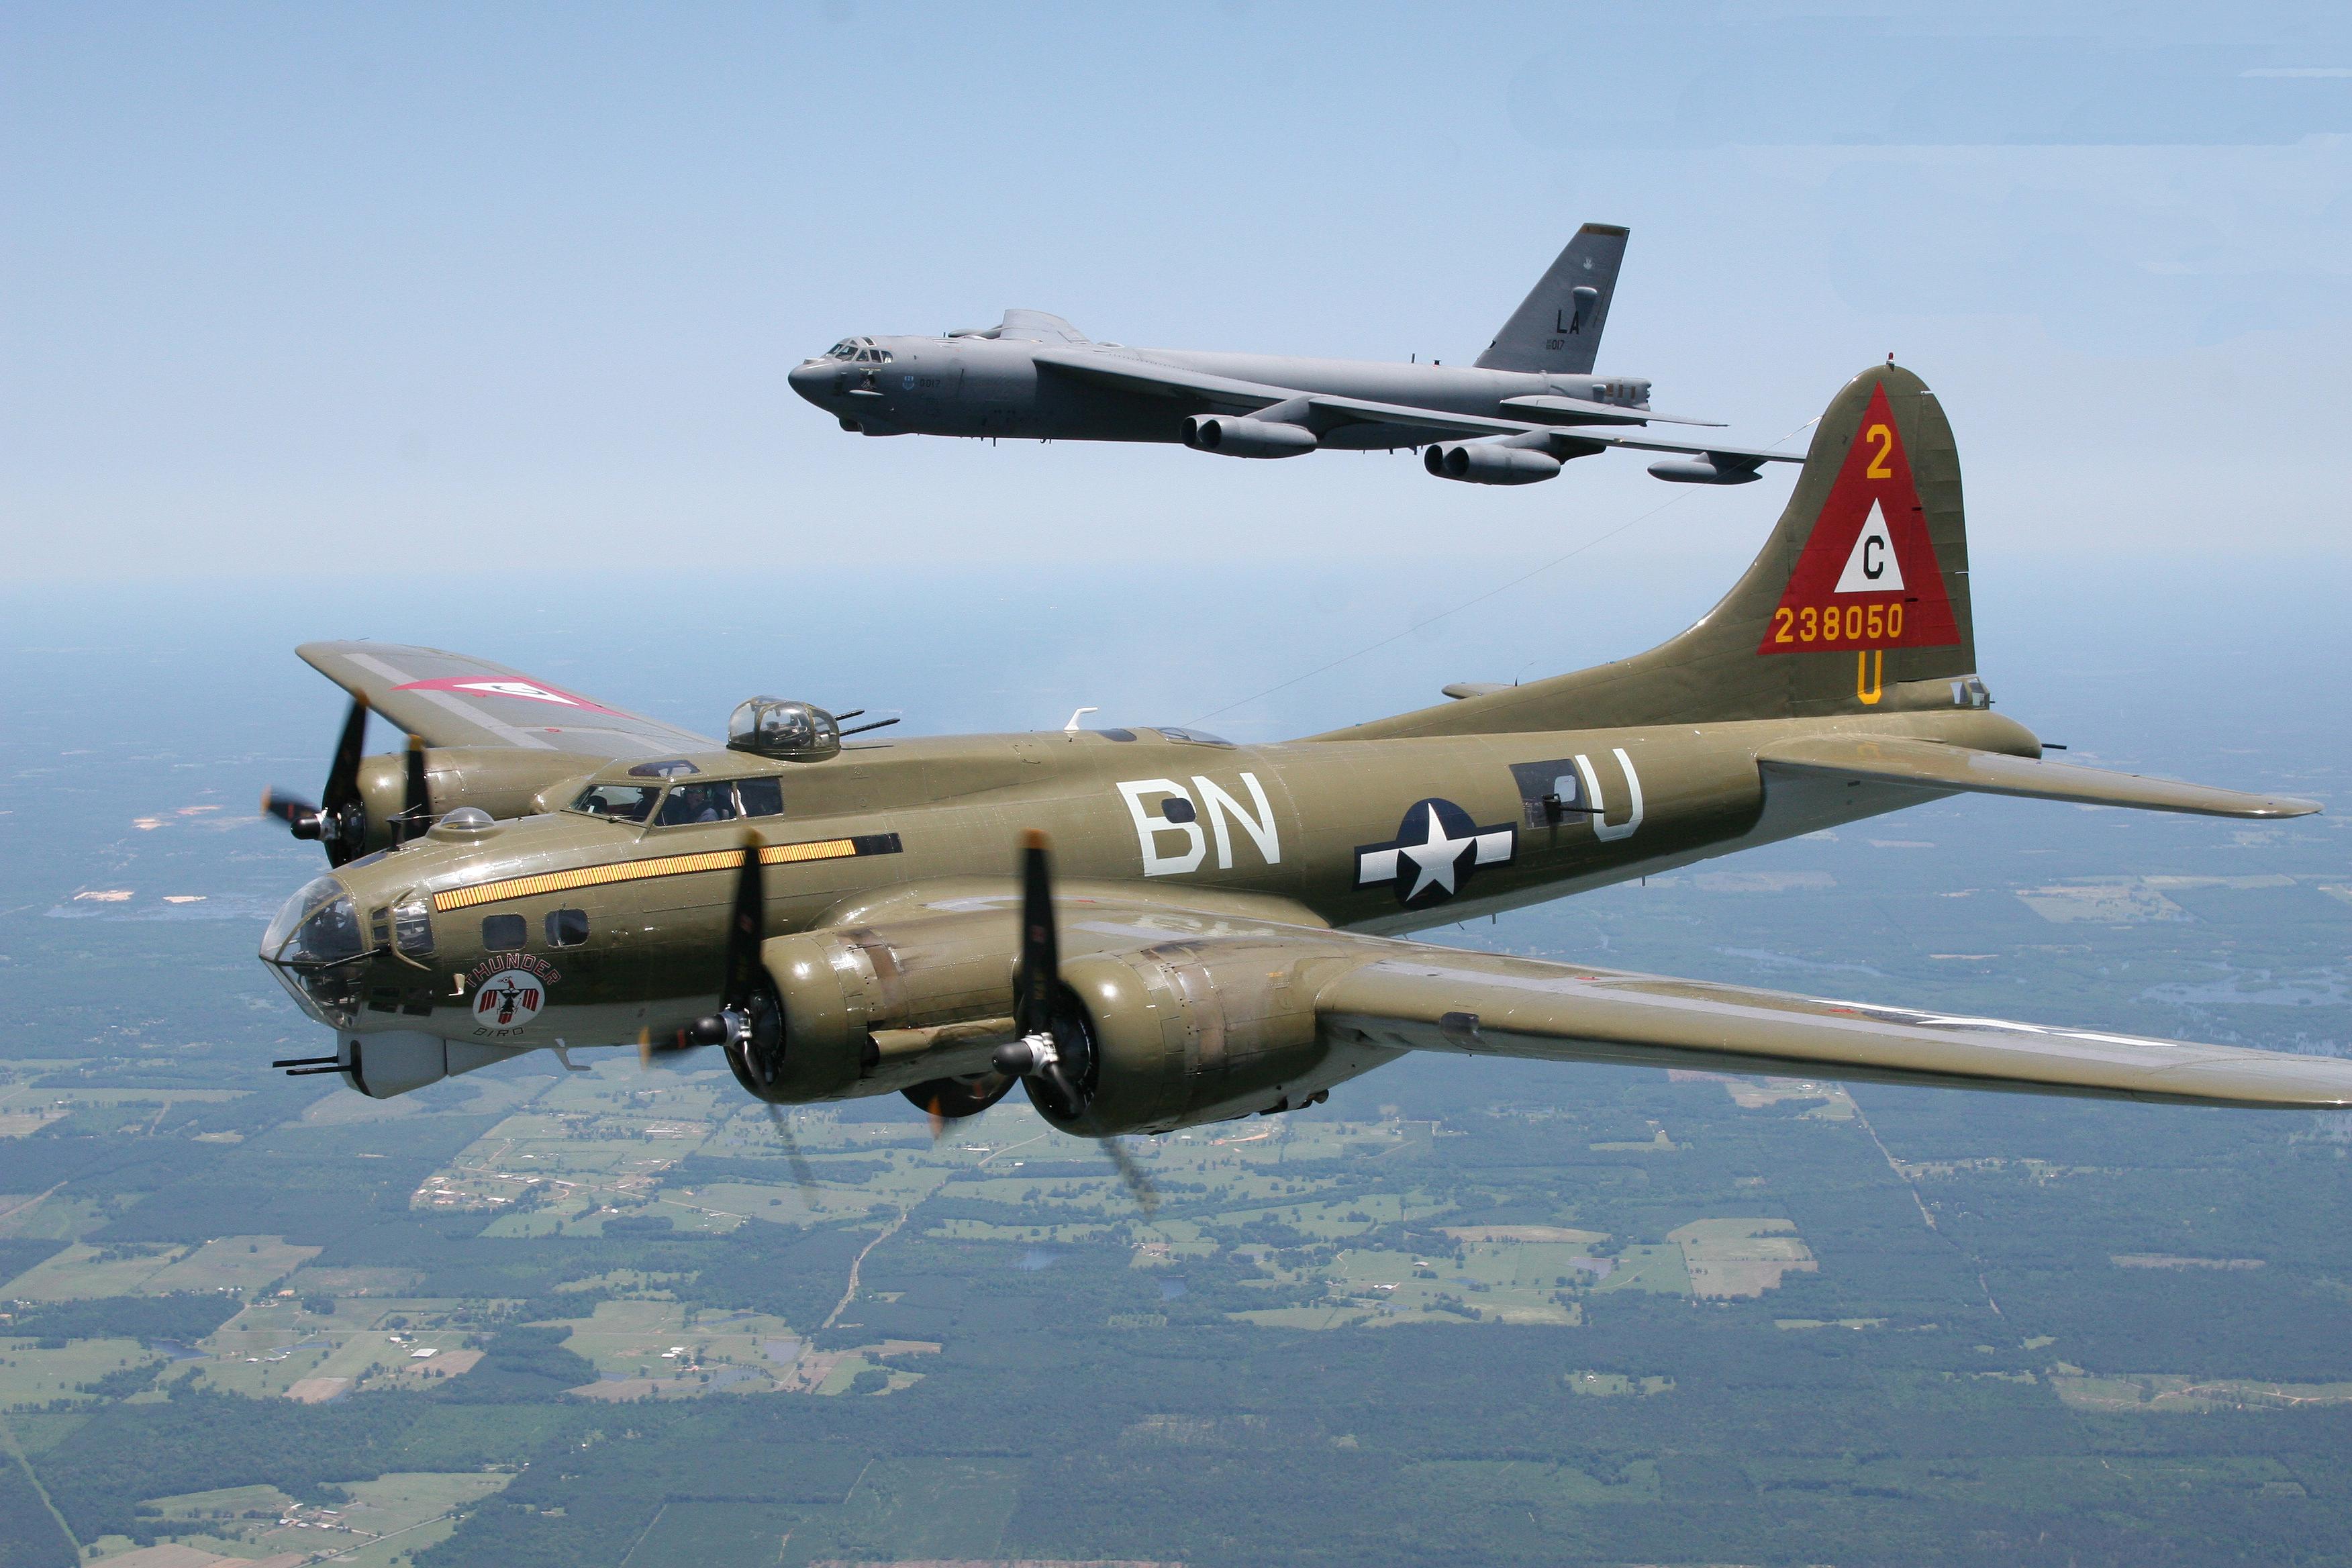 Boeing B-17 Flying Fortress #4